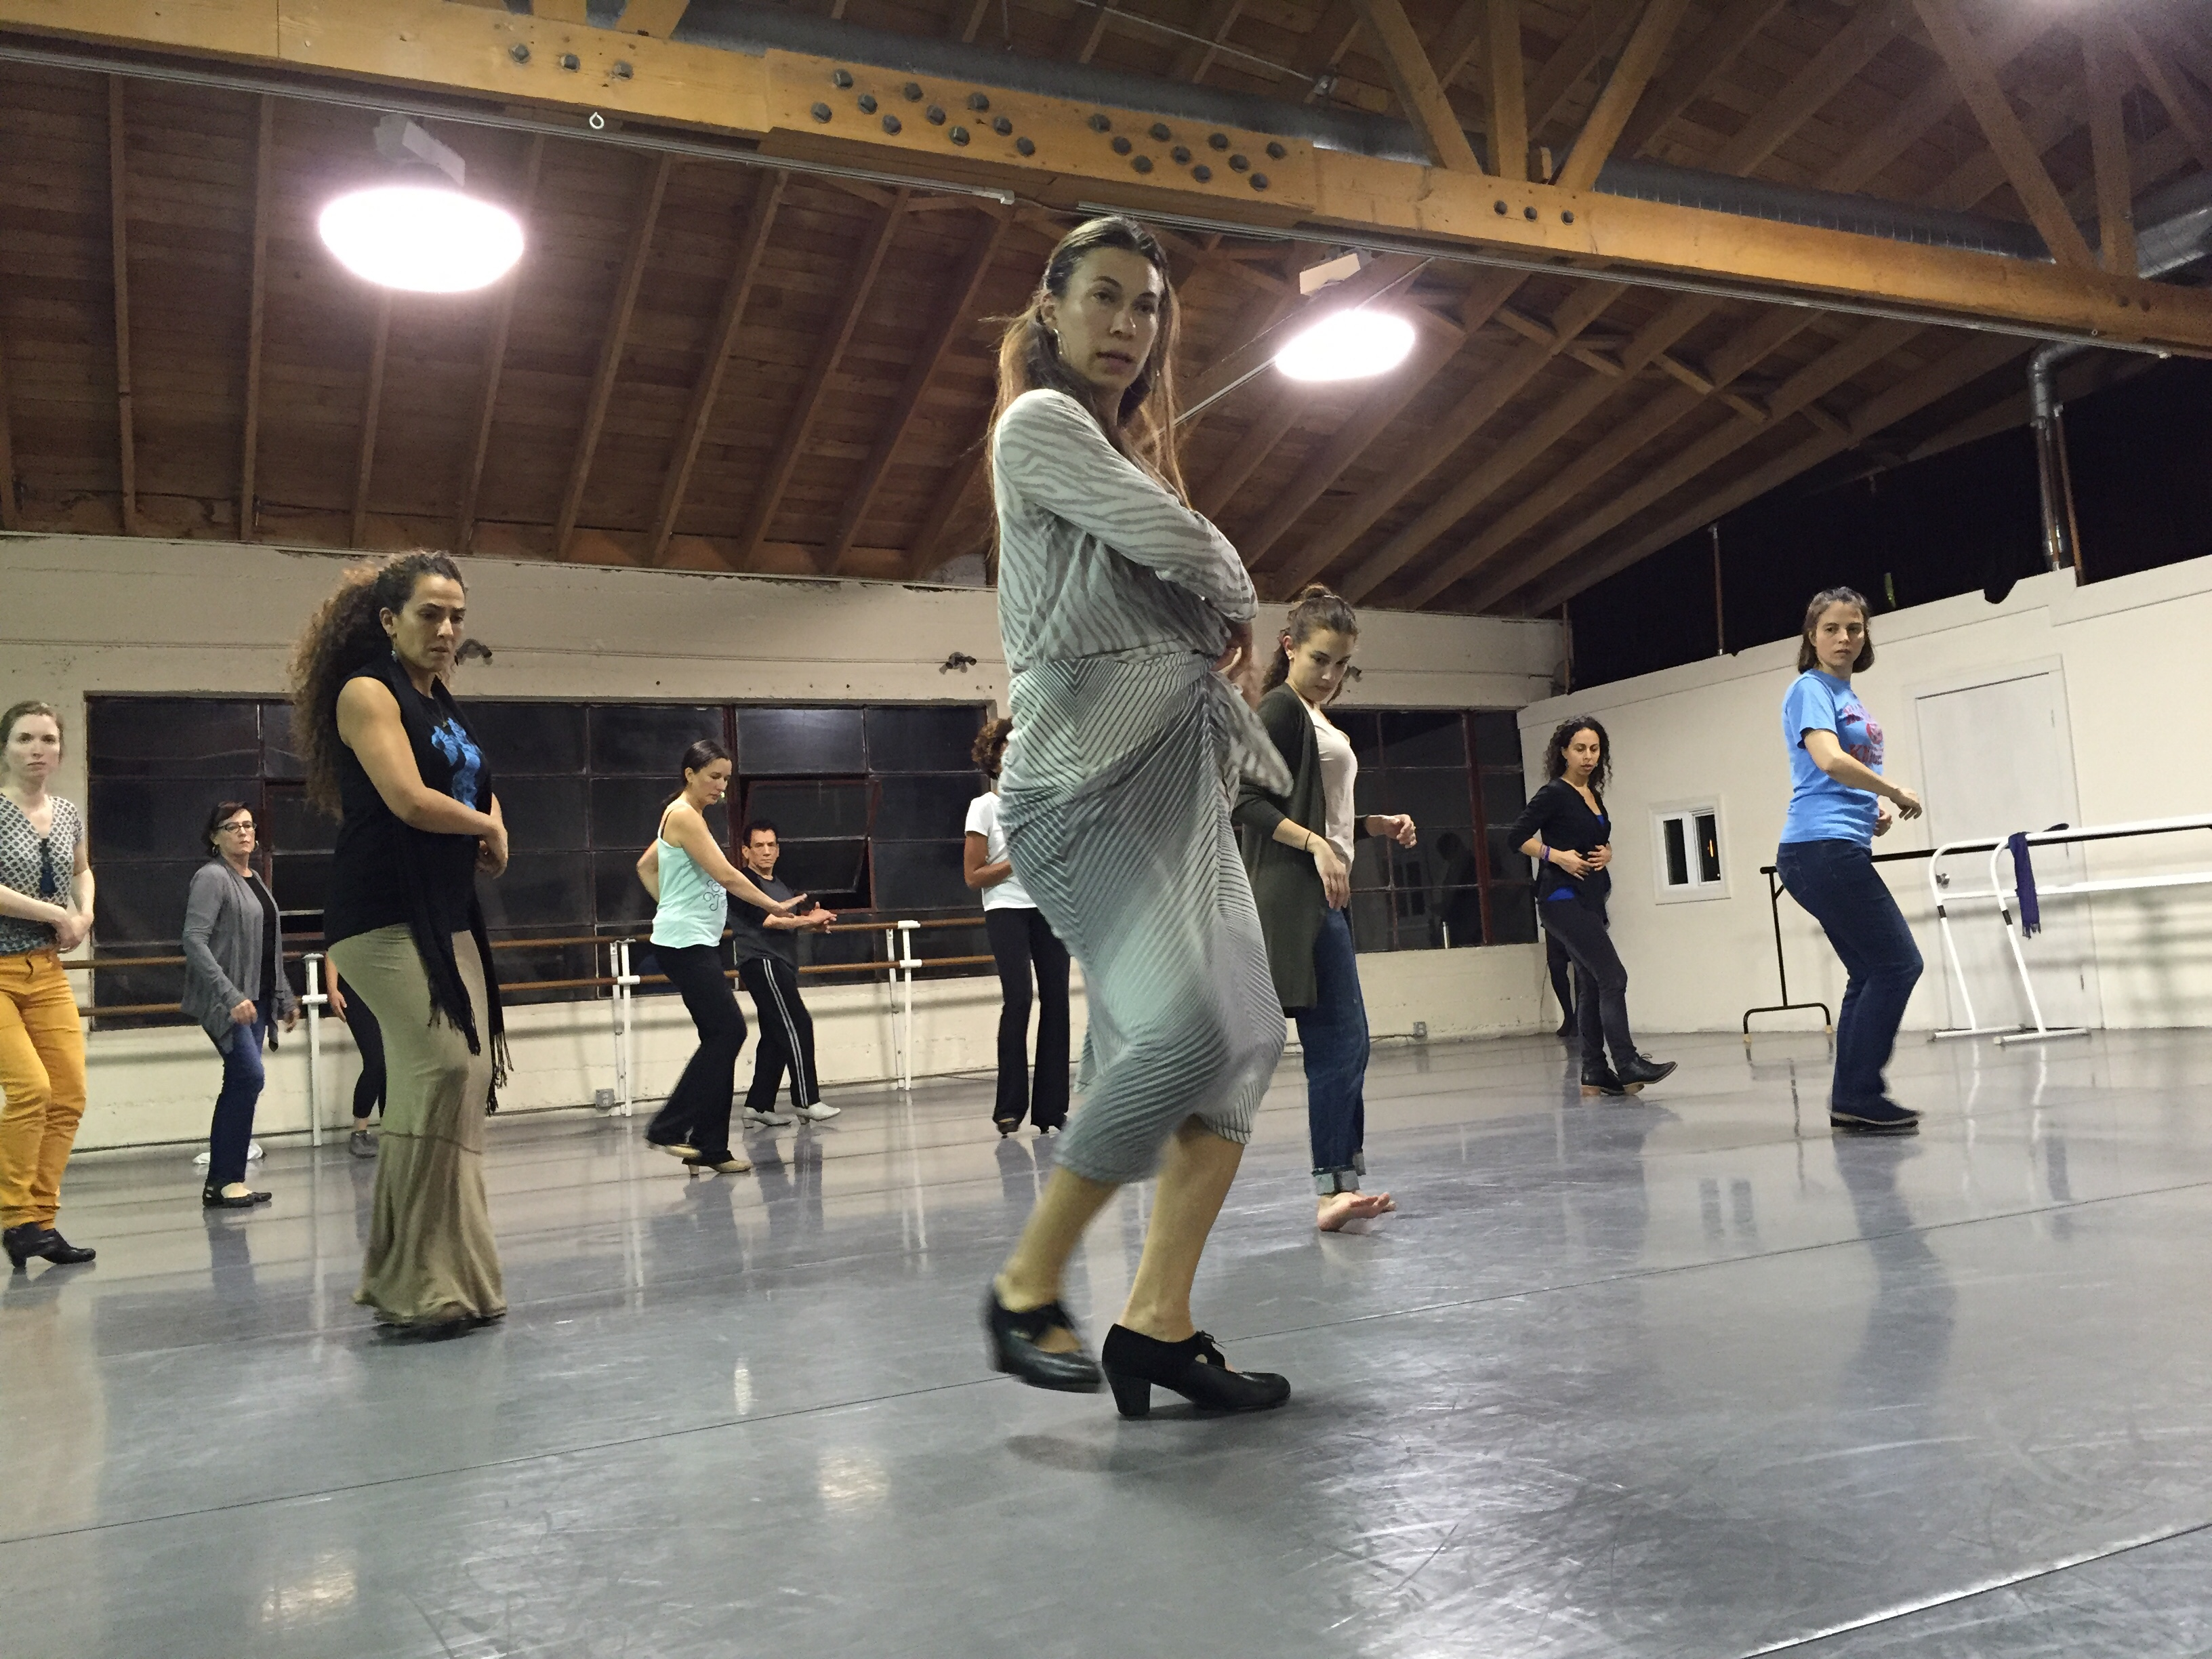 Clara Rodruiguez leads a class learning Farruquito's flash mob choreography last week in San Francisco